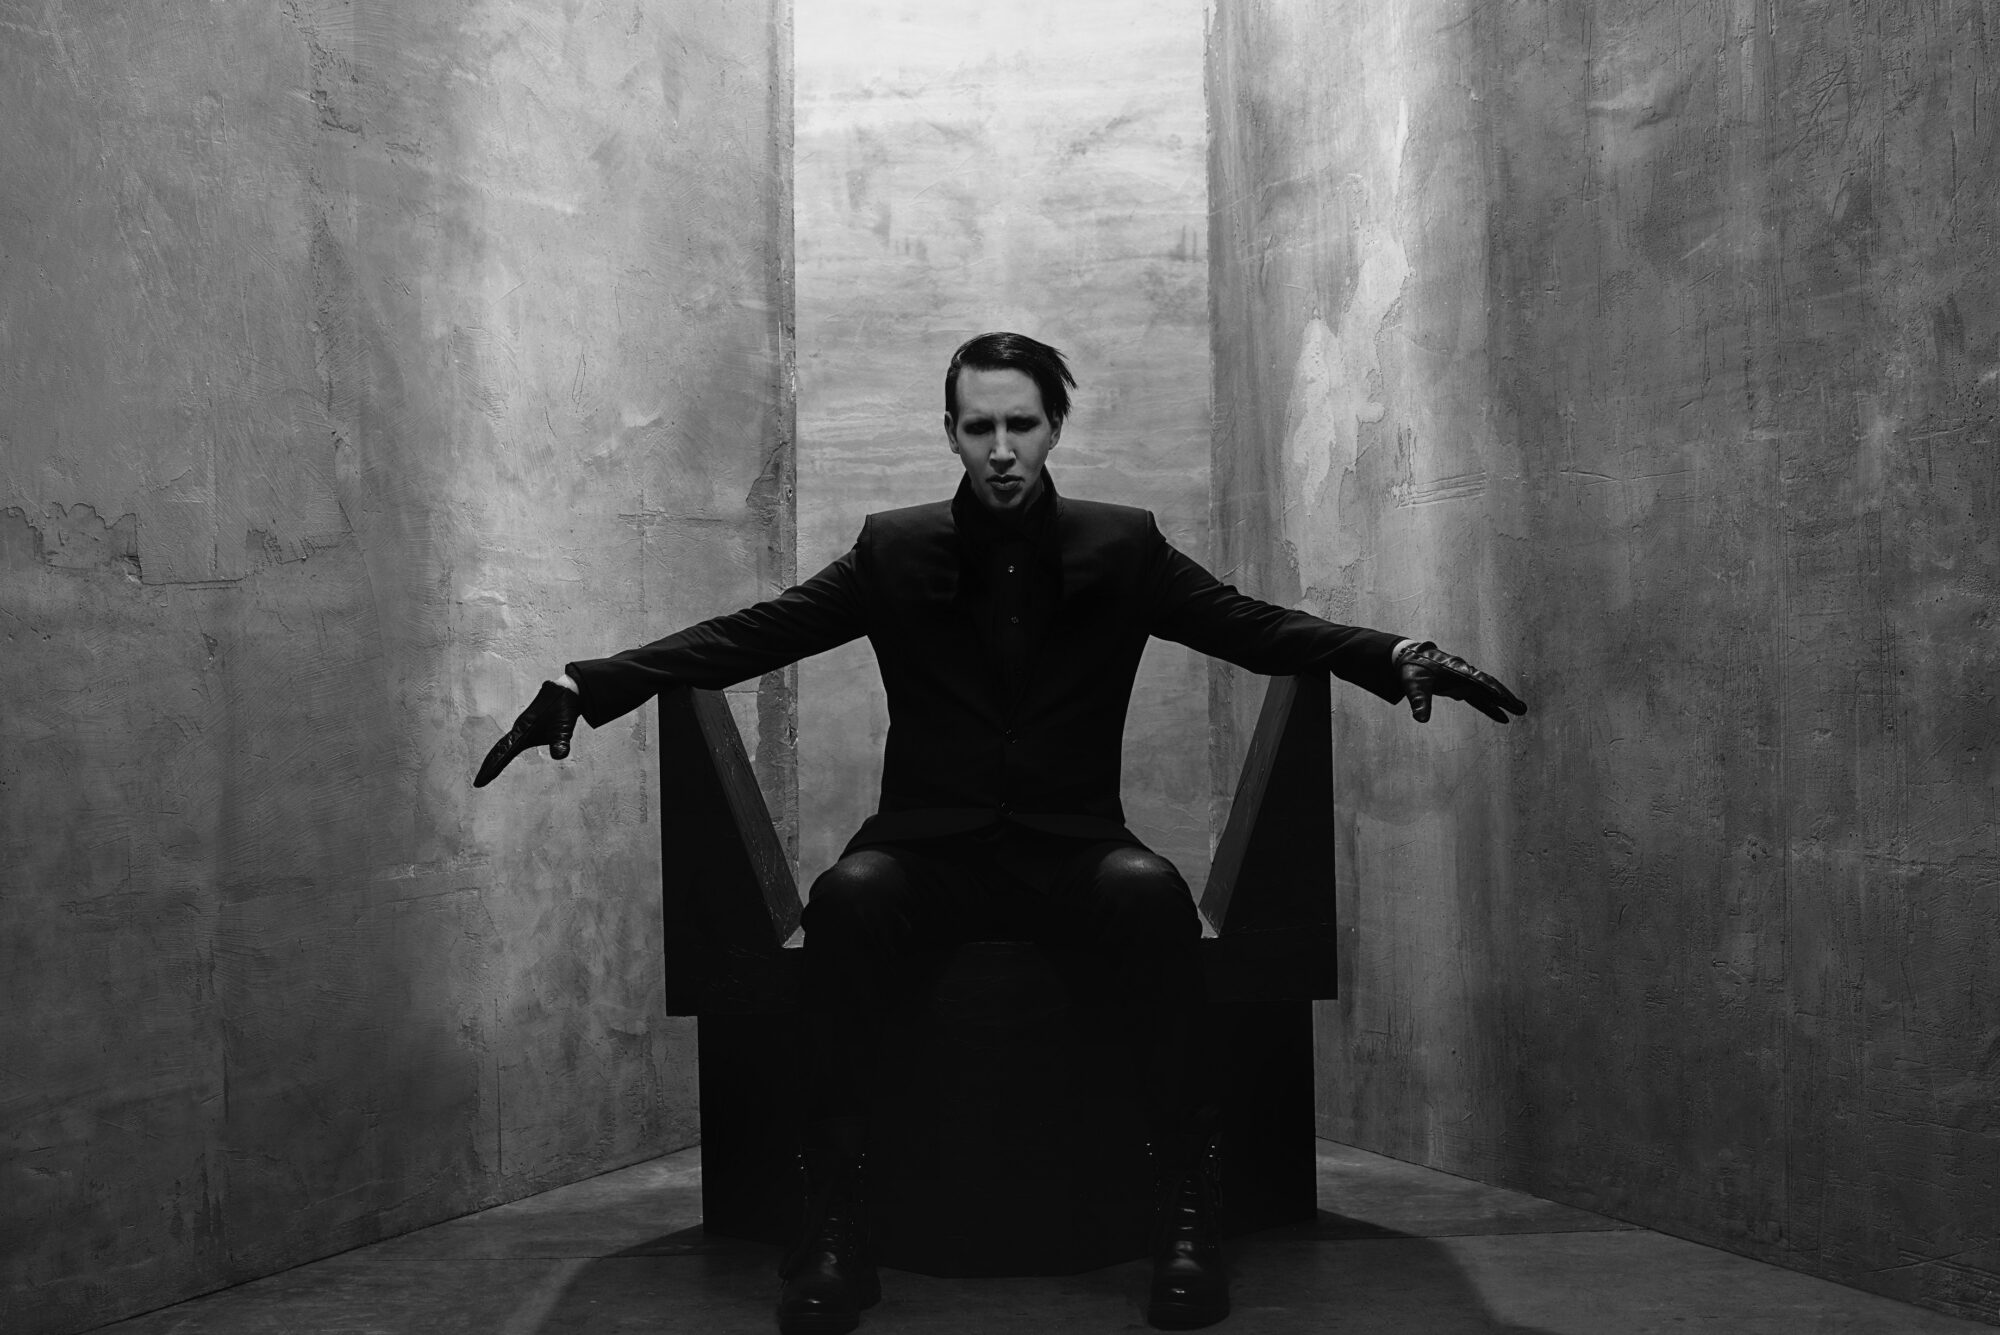 Marilyn Manson, The Pale Emperor